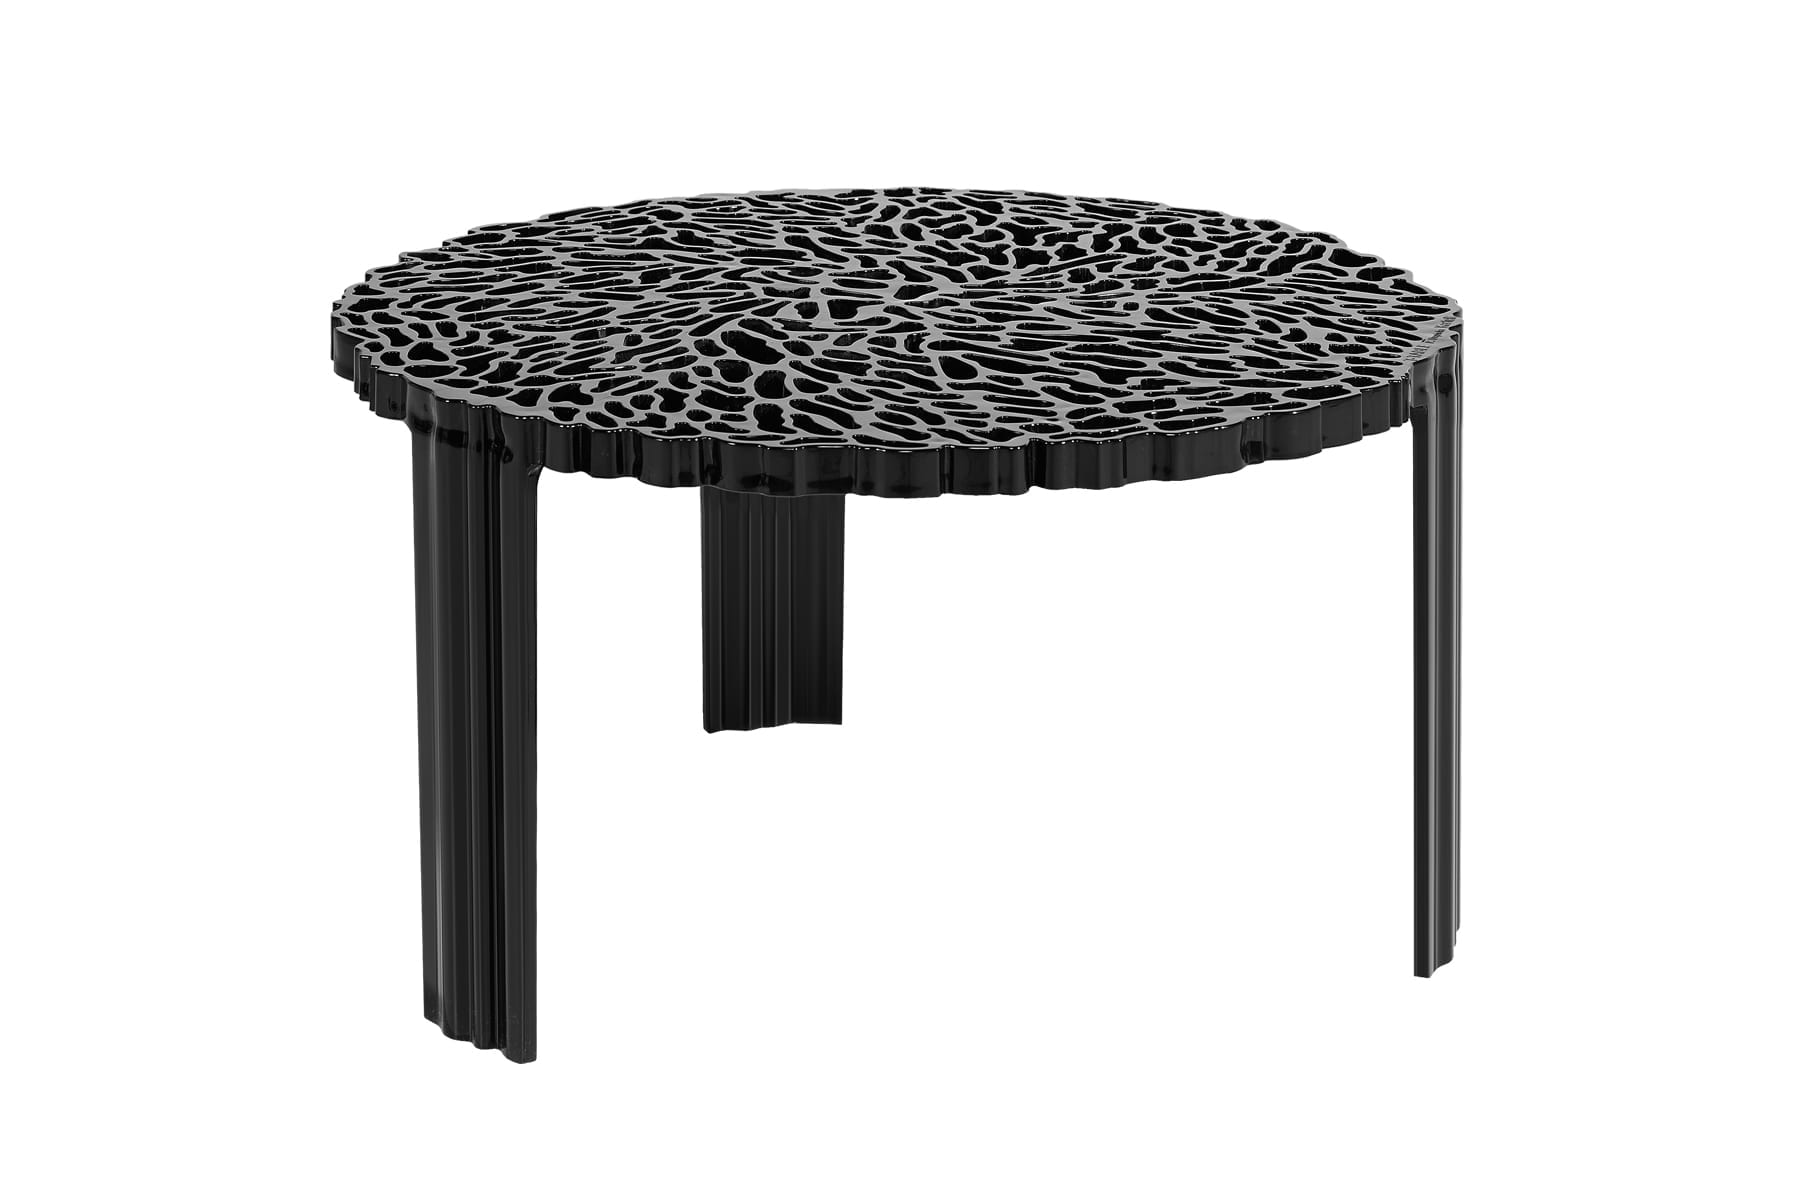 Kartell t table mckenzie willis for Table kartell